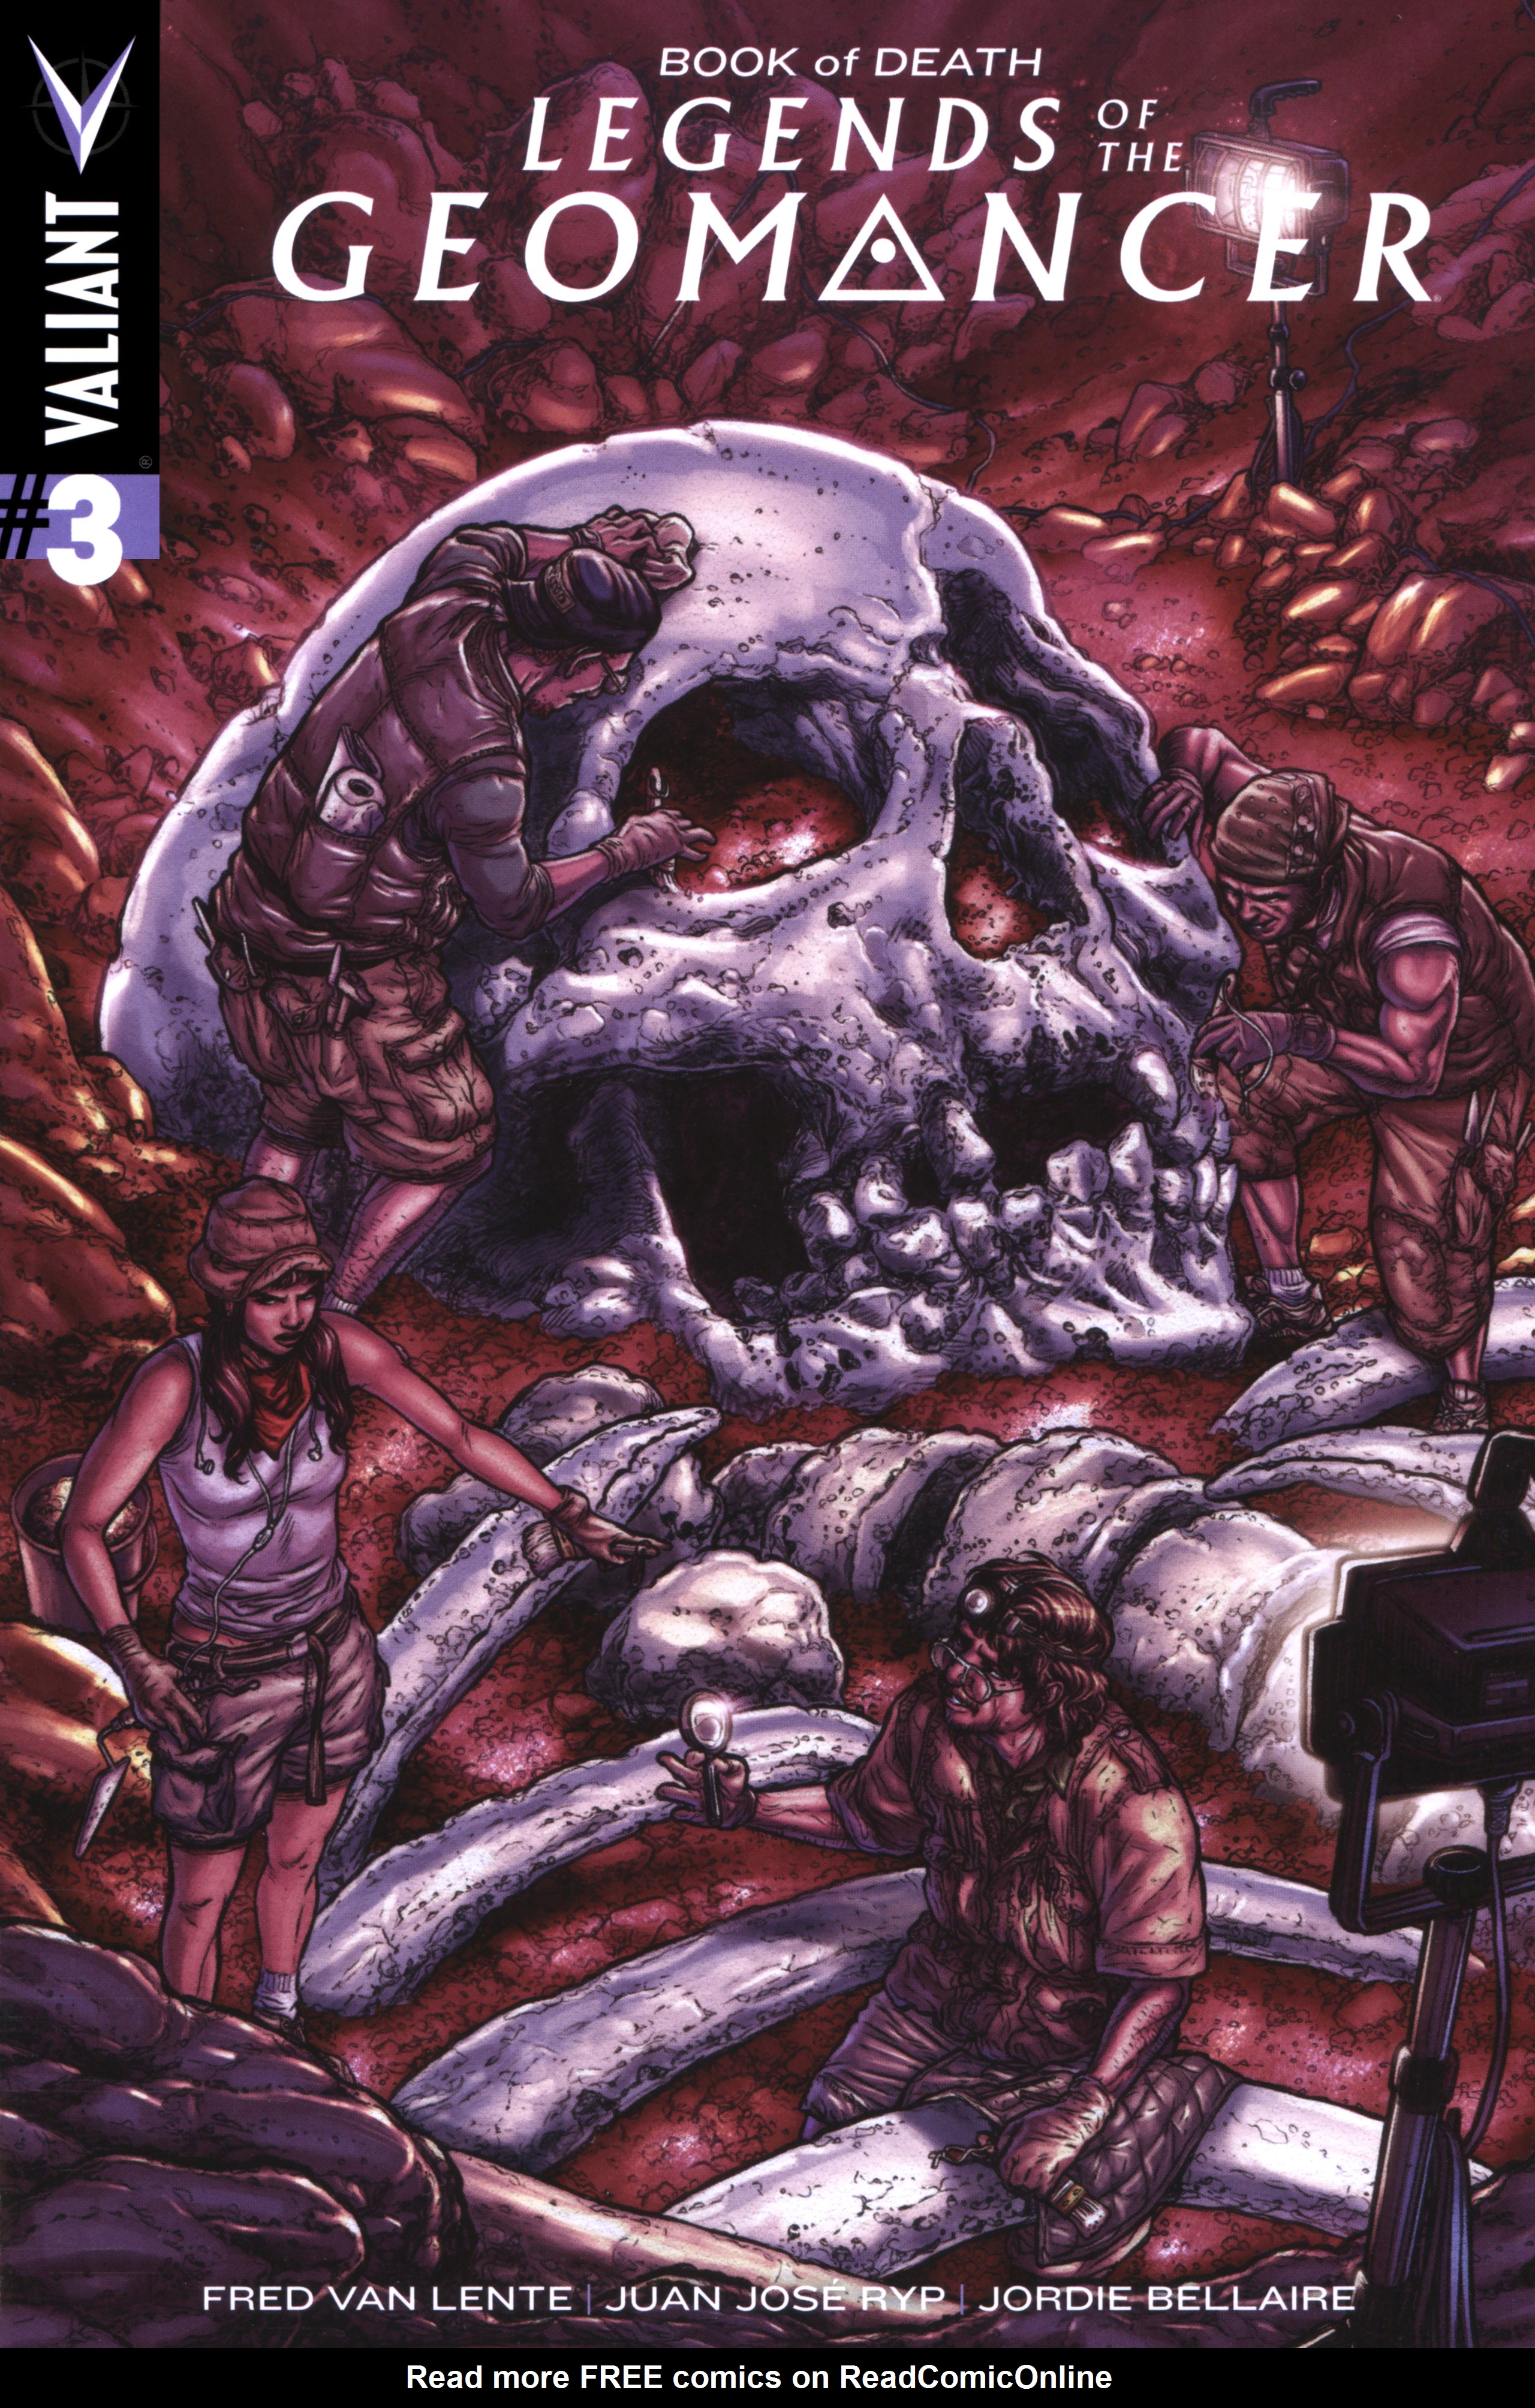 Book of Death Legends of the Geomancer Issue 3